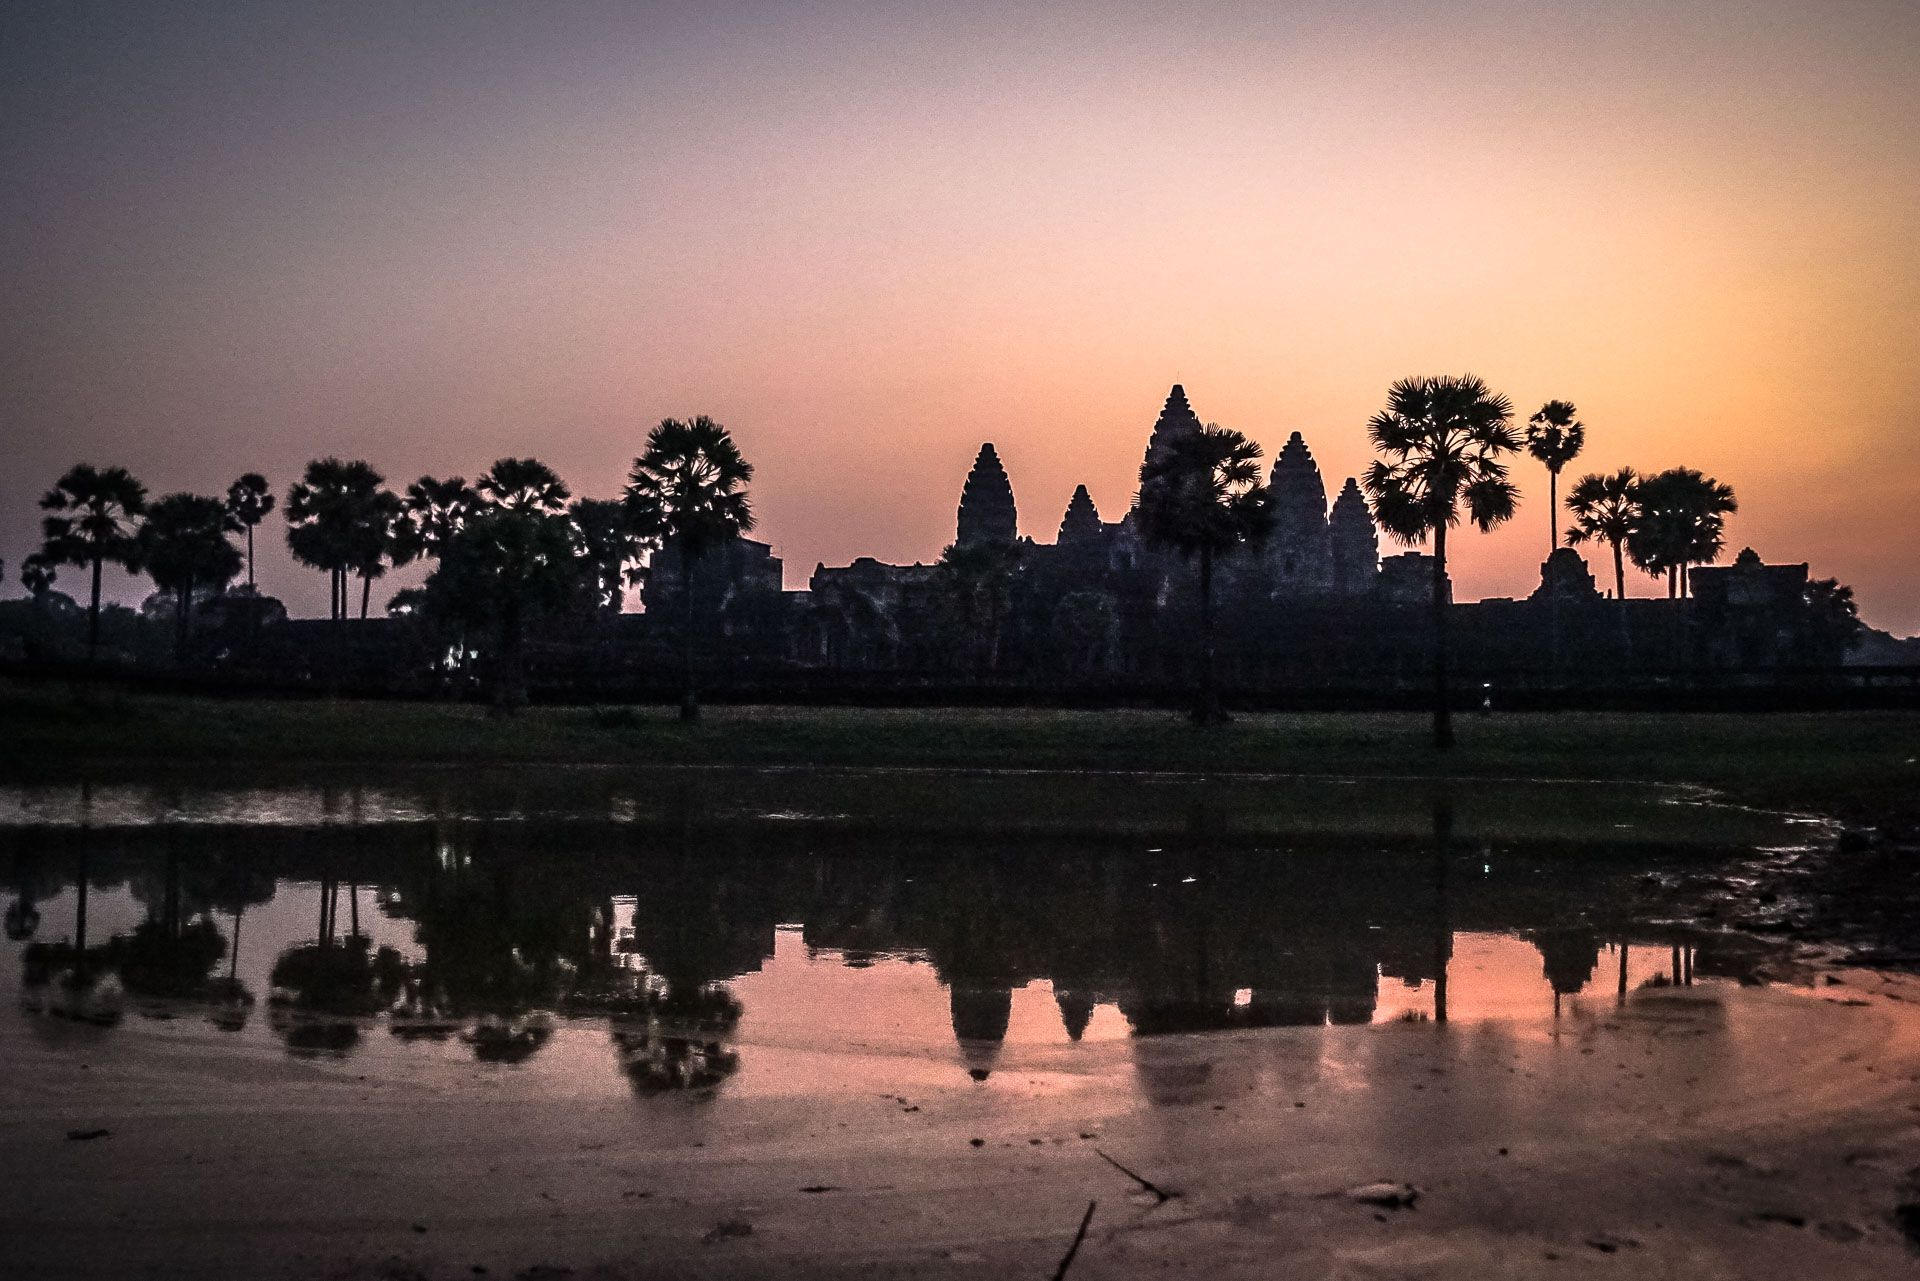 Lesvoyageuses-guide-voyage-Siem-reap-angkor-temples-Cambodge-20